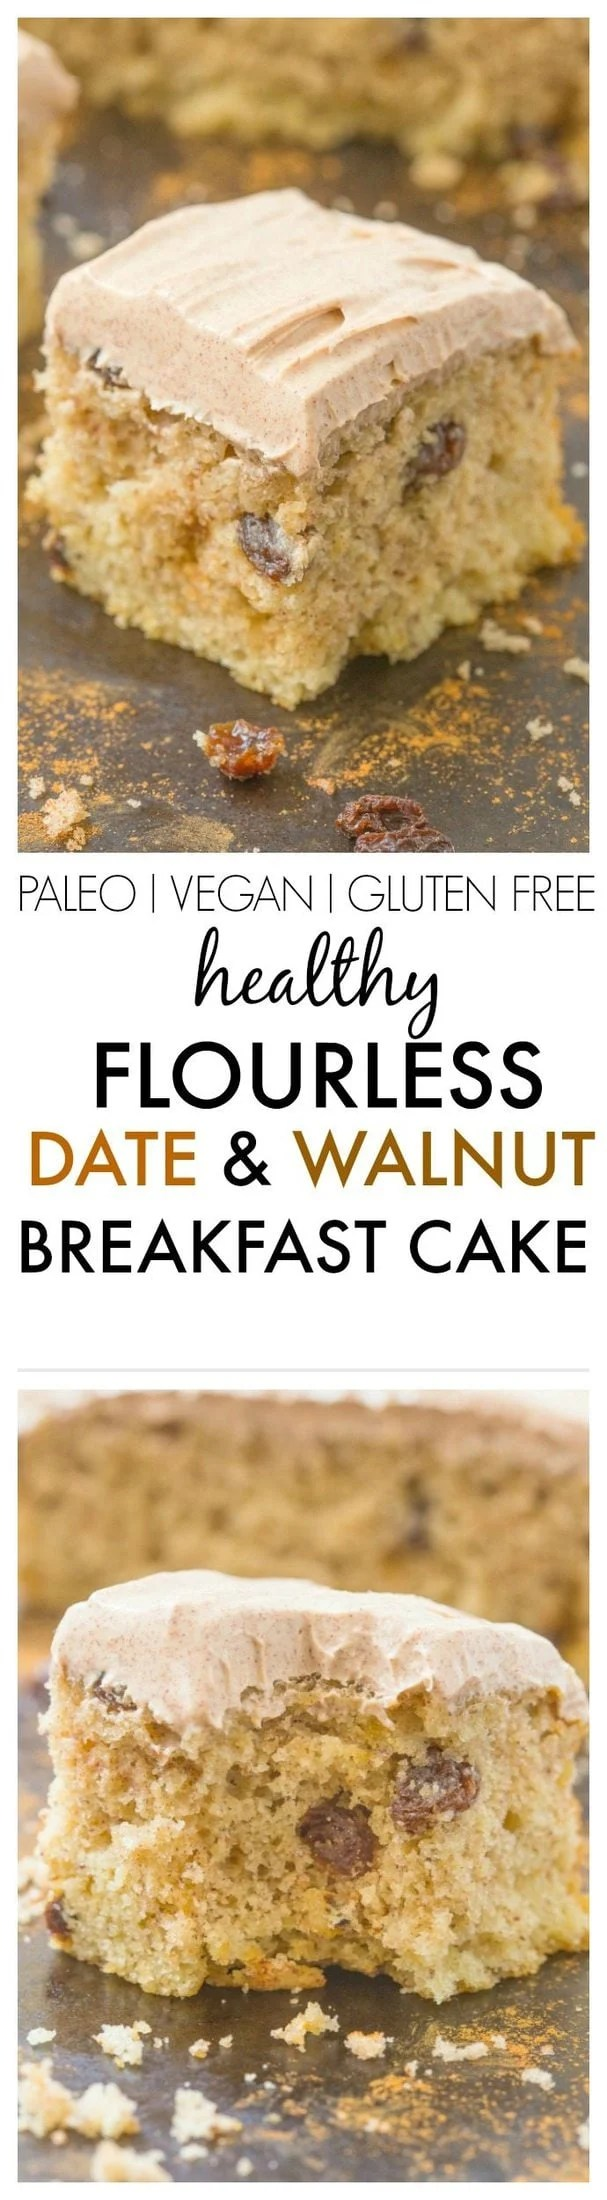 Healthy Flourless Date and Walnut Breakfast Cake naturally sweetened and made with NO butter, oil, flour or sugar but 100% delicious and satisfying and EASY! {vegan, gluten free, paleo recipe}- thebigmansworld.com